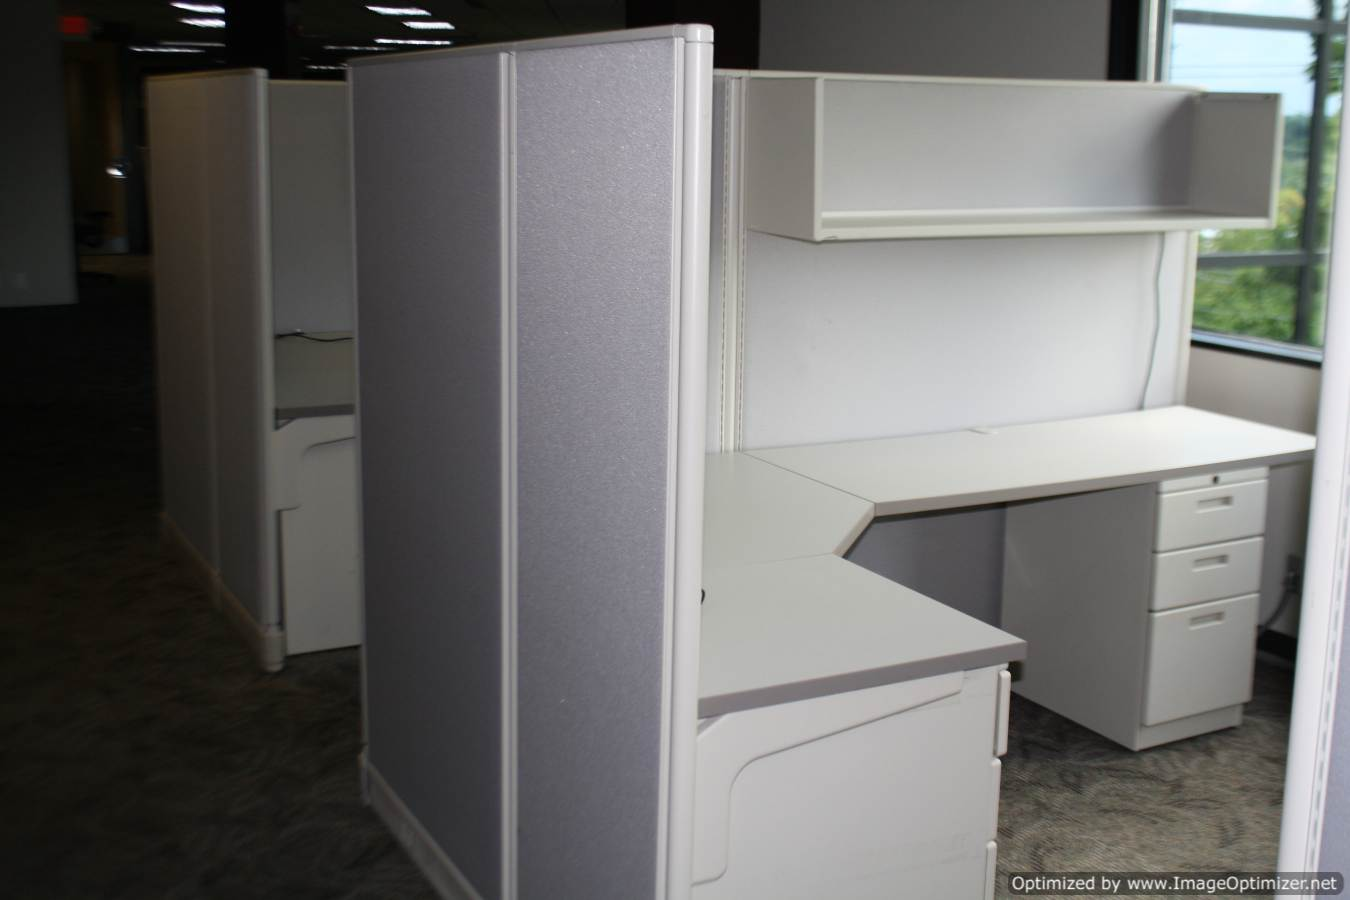 Knoll Equity Cubicles 2